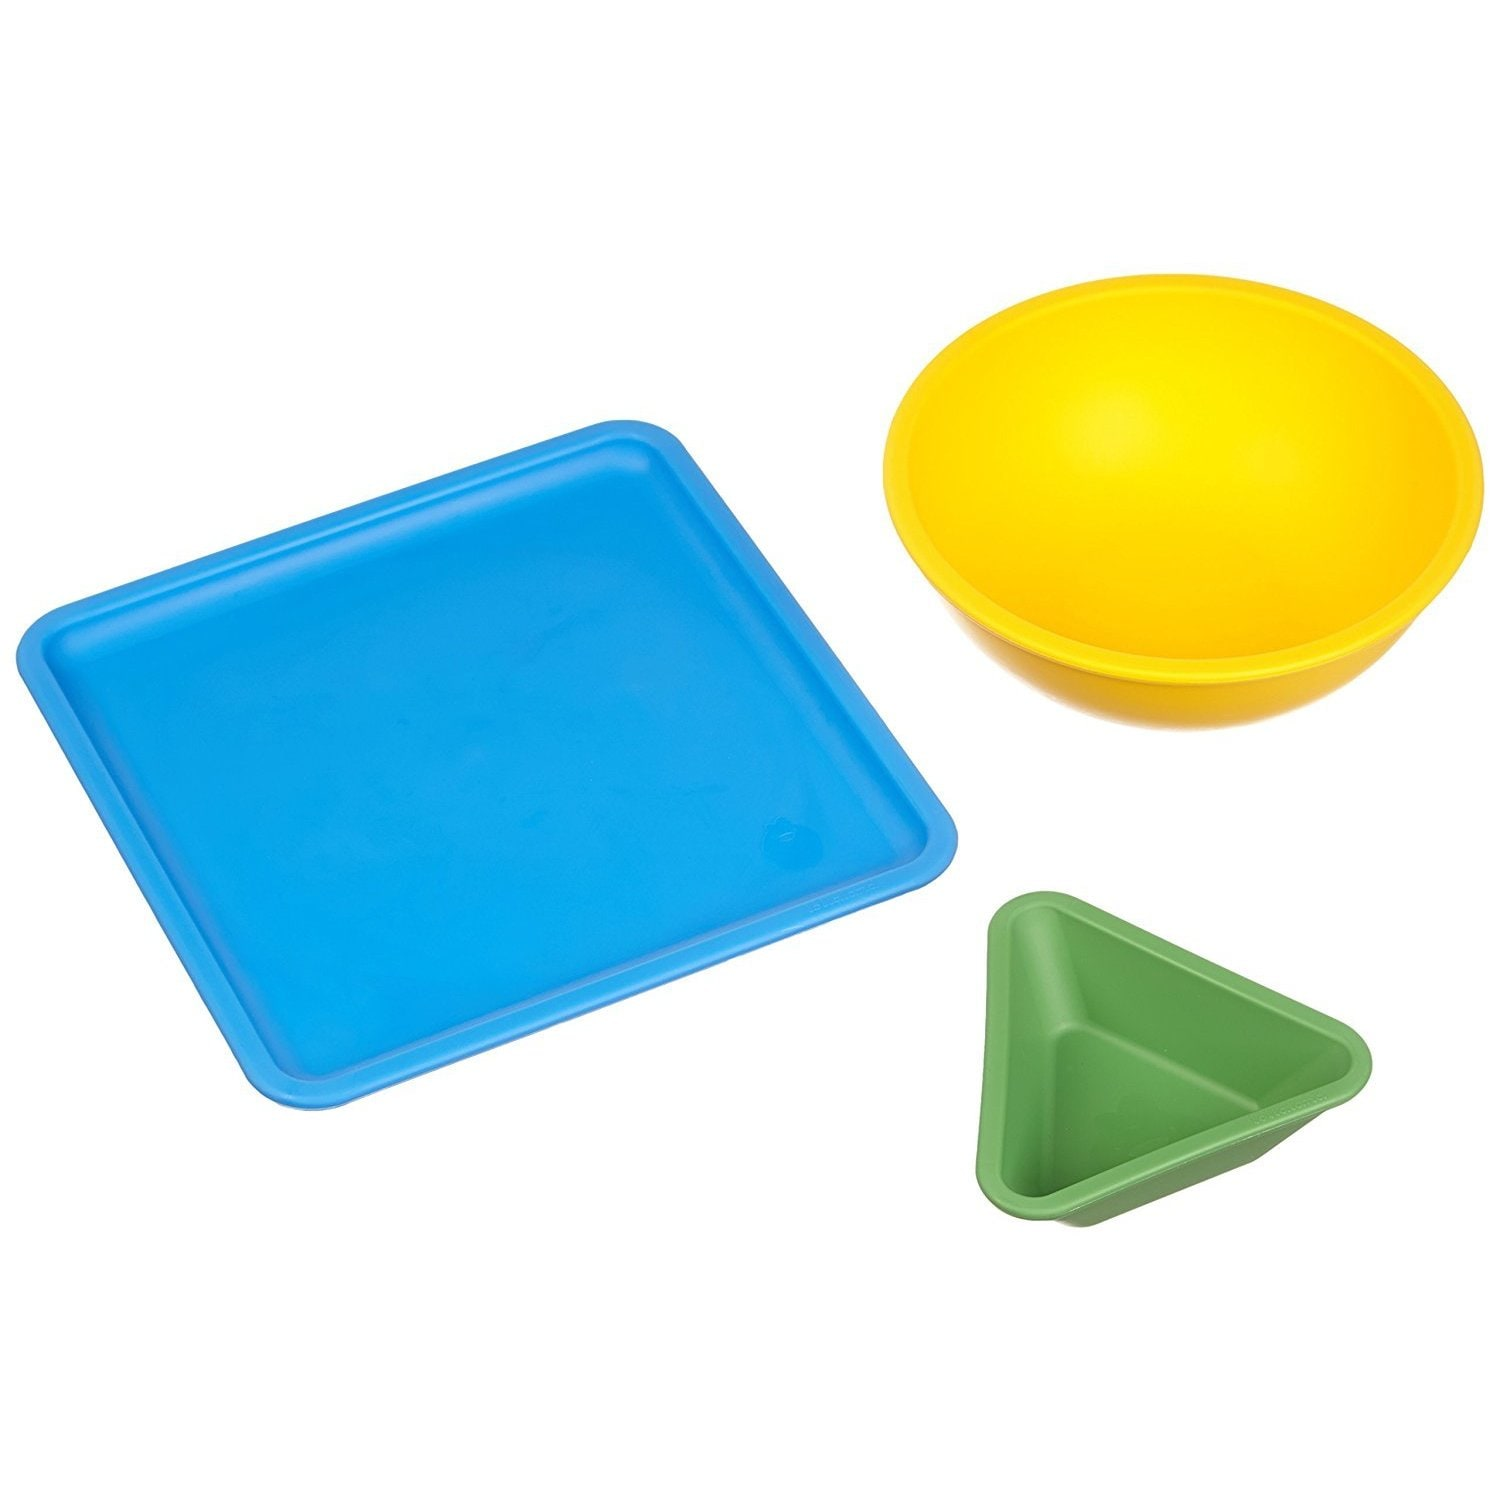 Lollacup Summer 3-piece Mealtime Set (Green, Yellow, Blue...